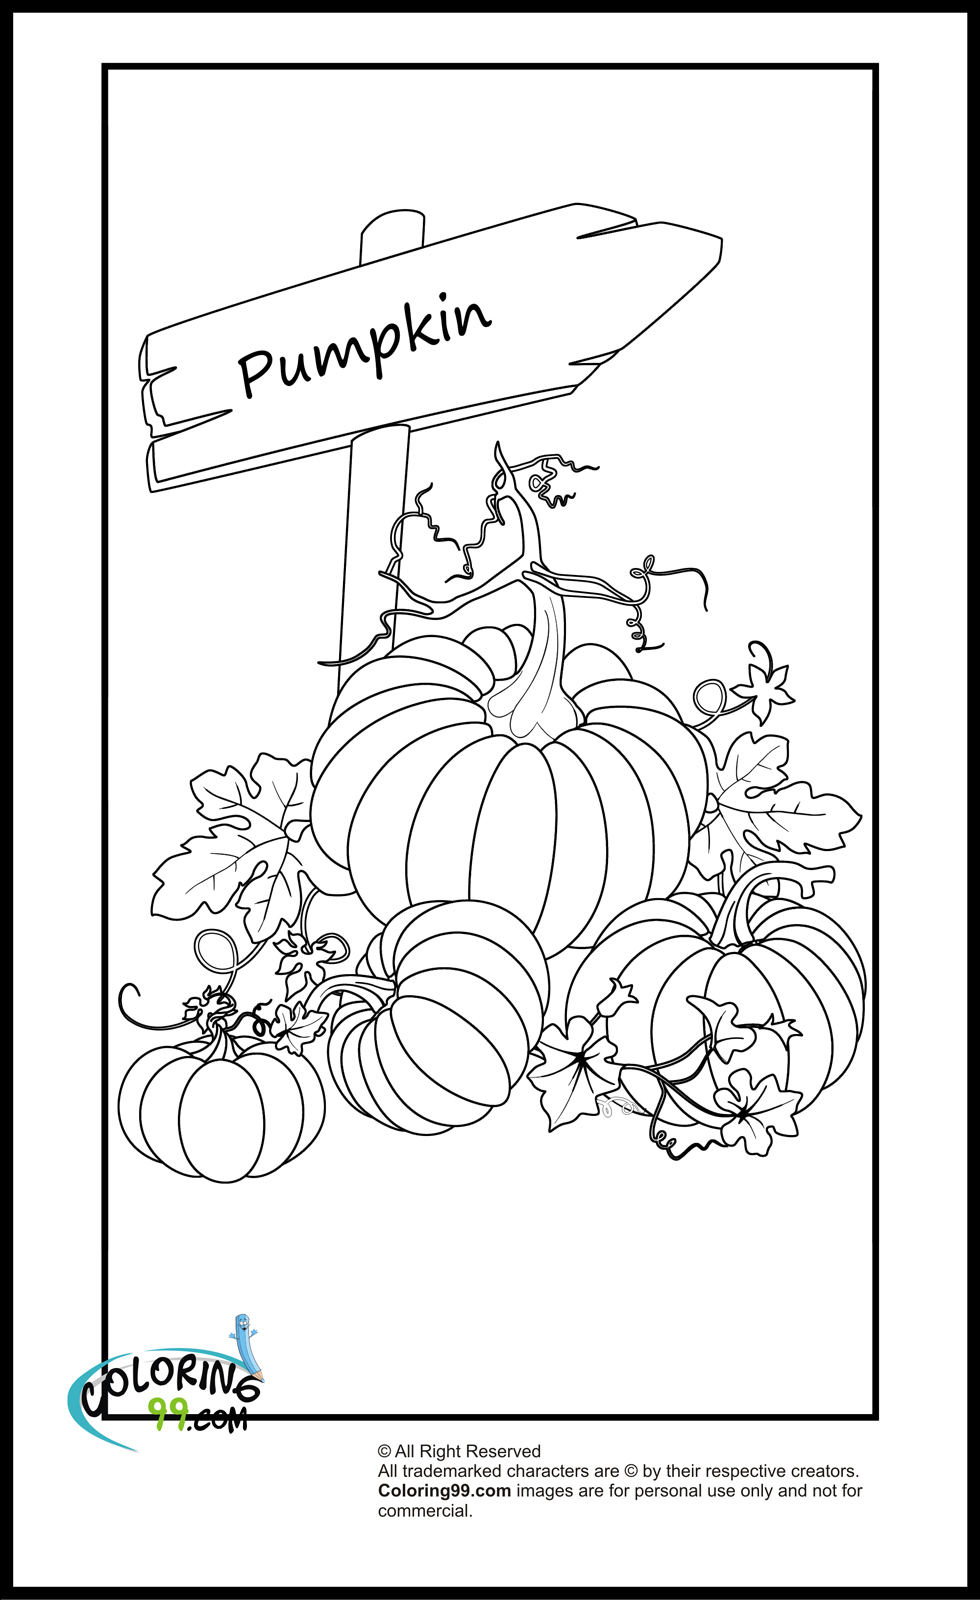 pumpkin colouring page pumpkin coloring pages minister coloring page pumpkin colouring